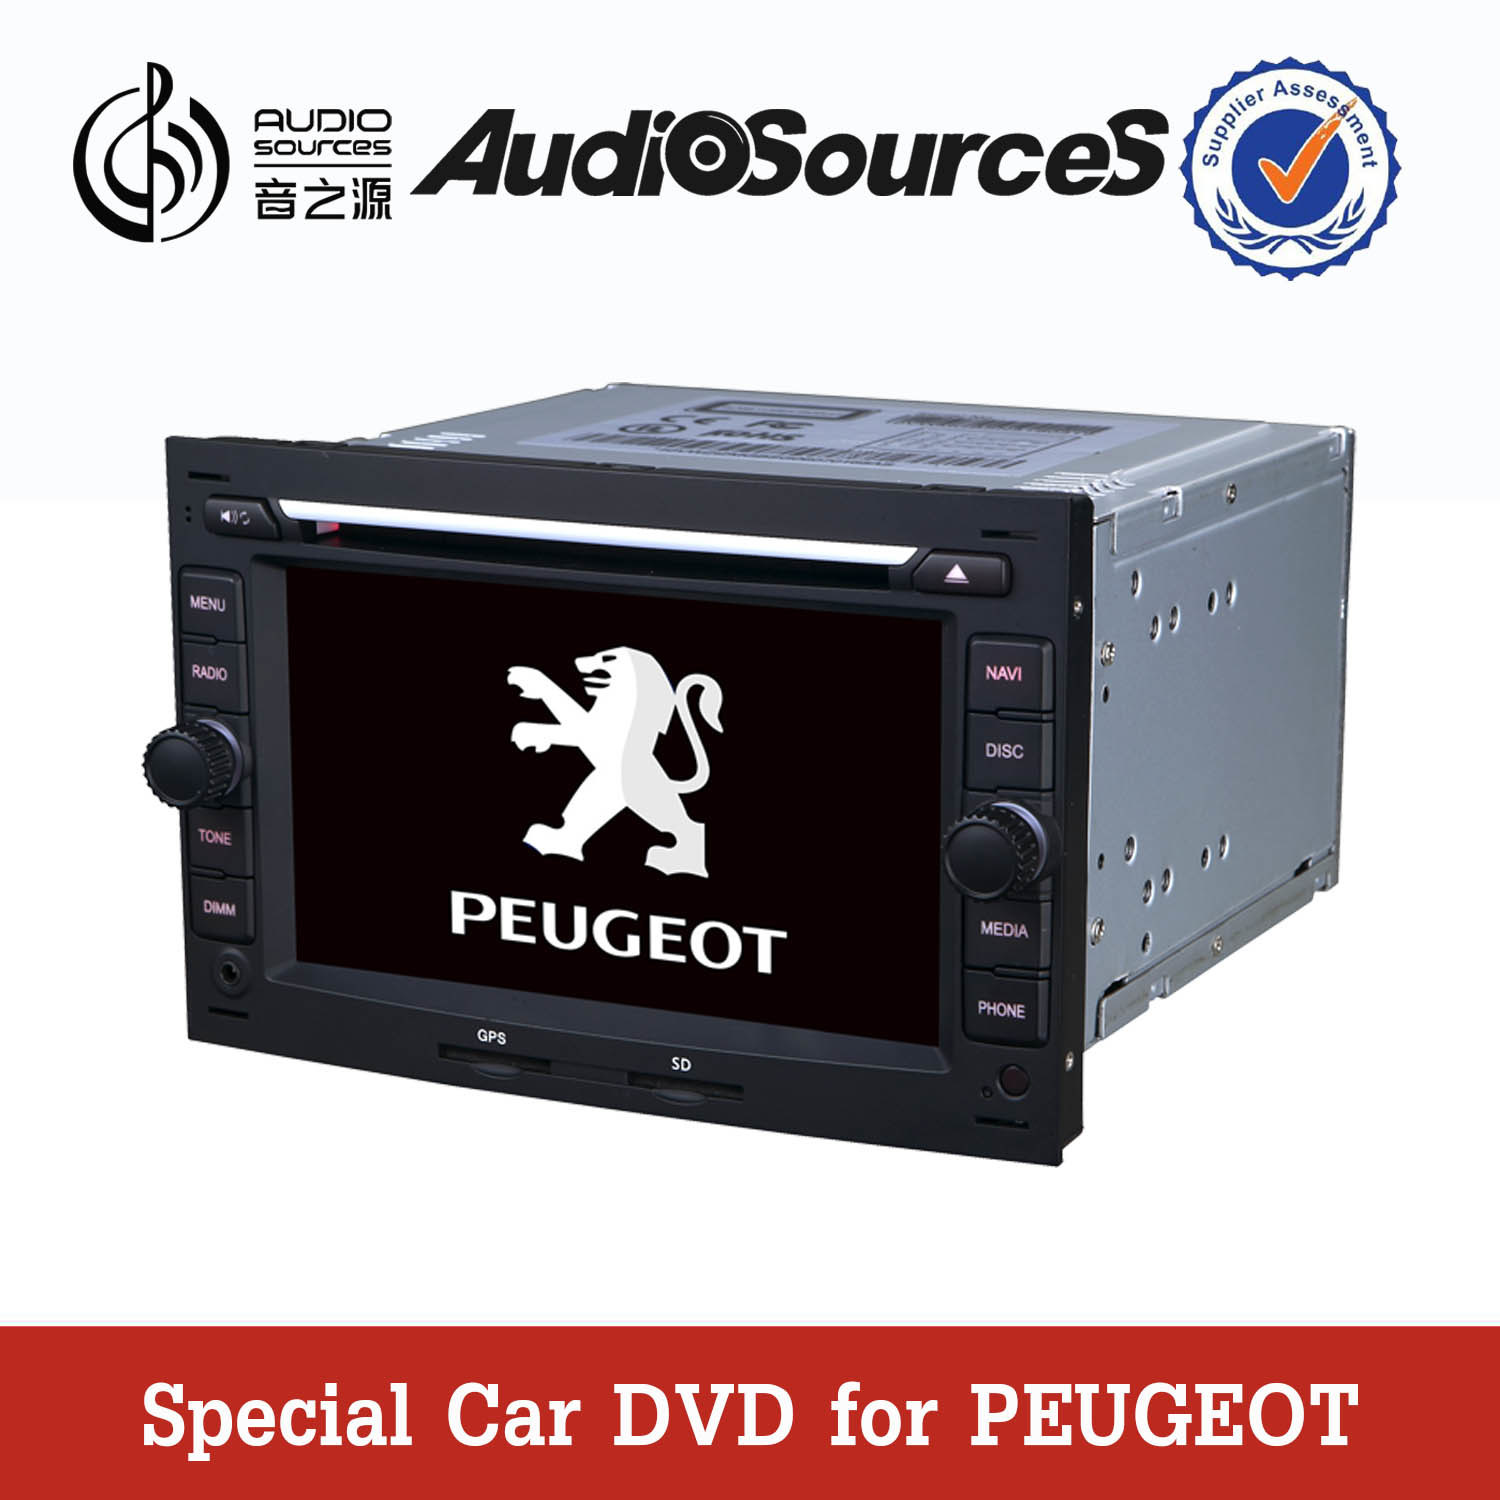 lecteur dvd de voiture pour peugeot 307 as 8707g. Black Bedroom Furniture Sets. Home Design Ideas